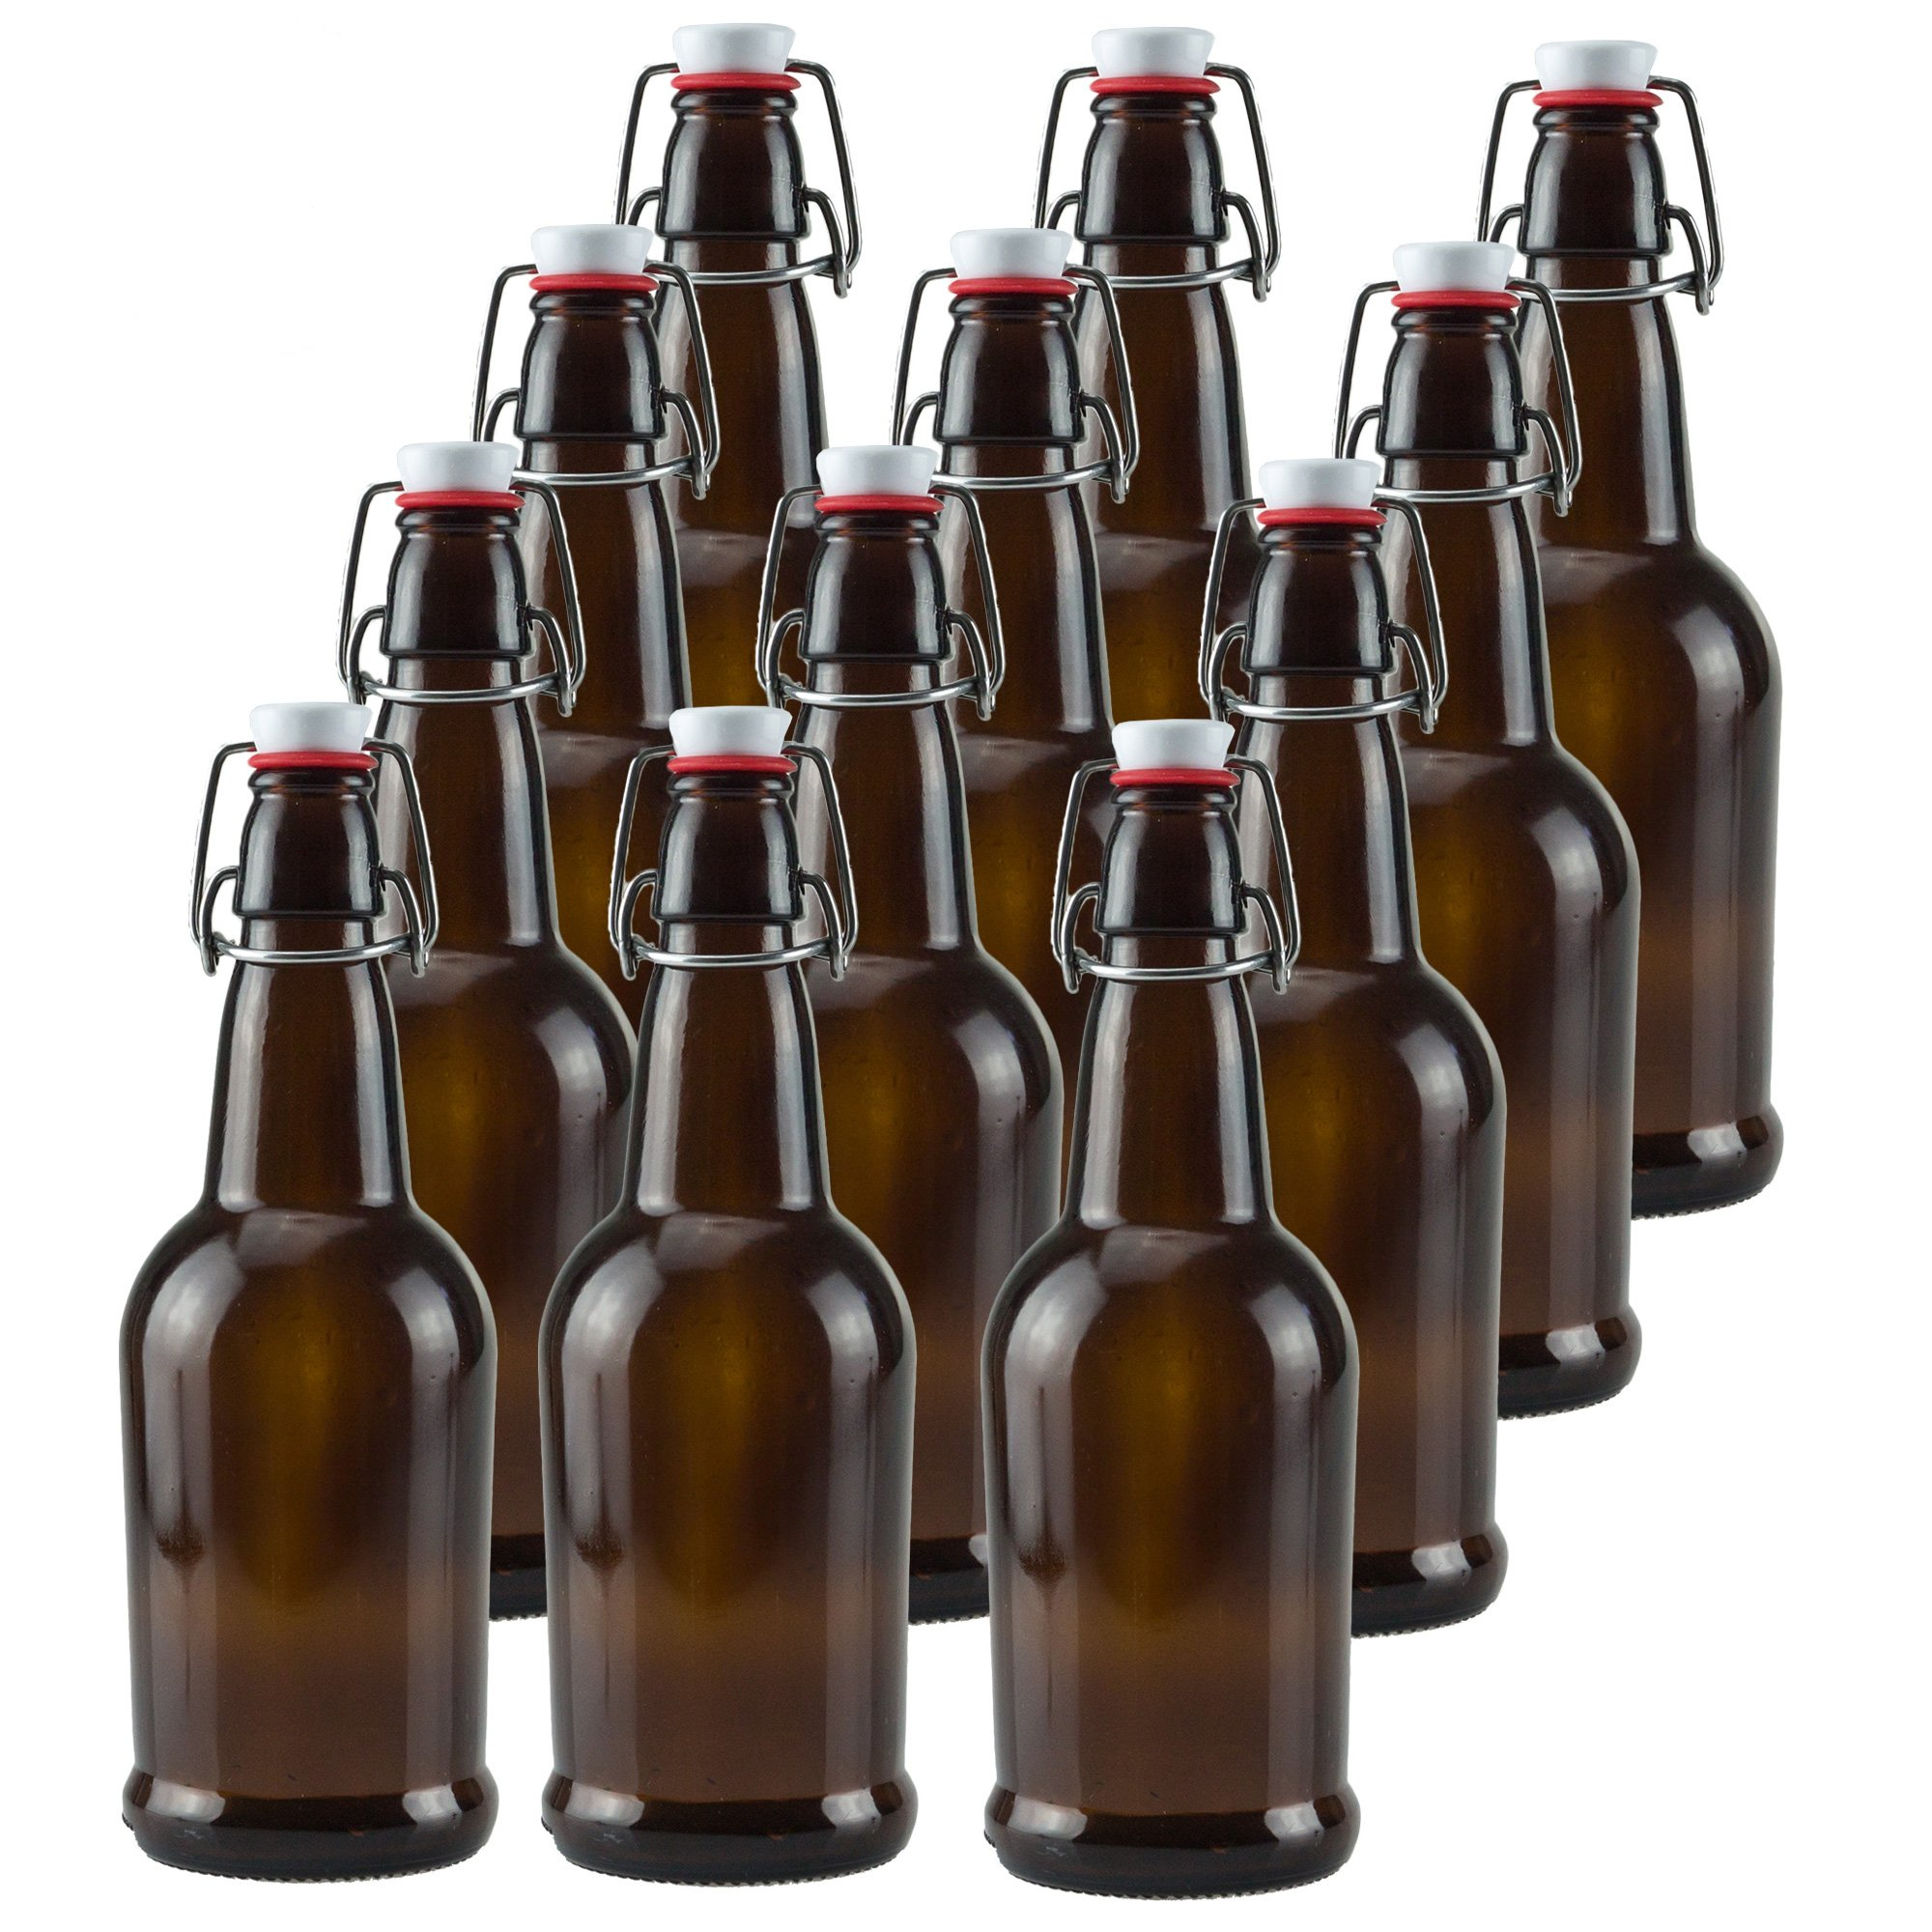 Ilyapa 16 oz Amber Glass Beer Bottles for Home Brewing 12 Pack with Flip Caps